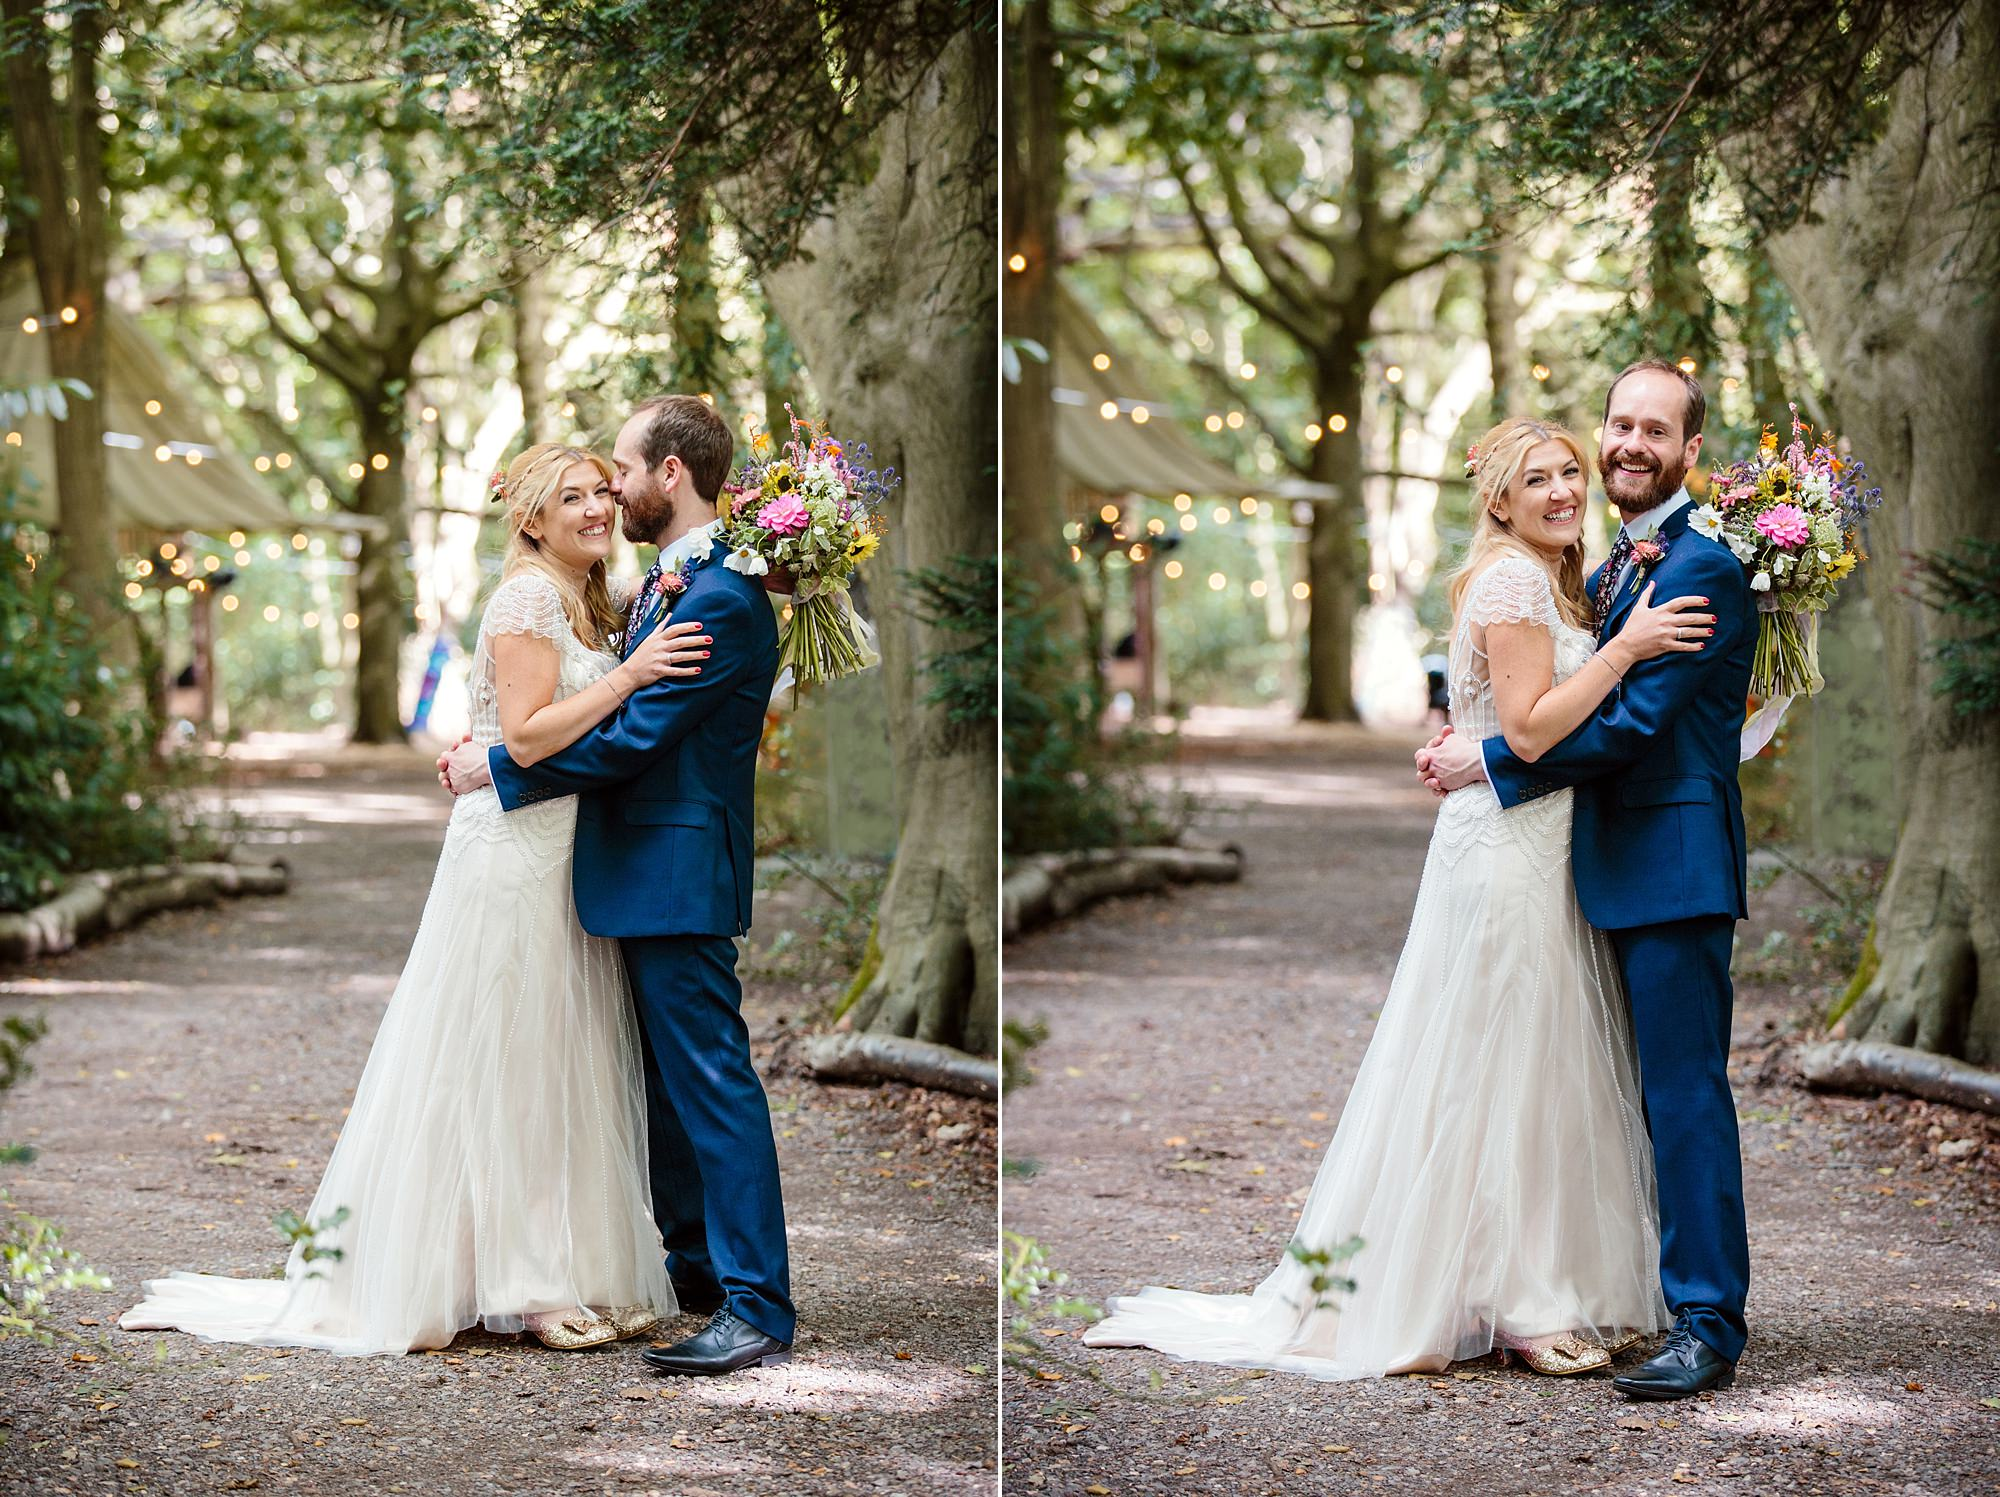 Woodland Weddings Tring bride and groom hugging